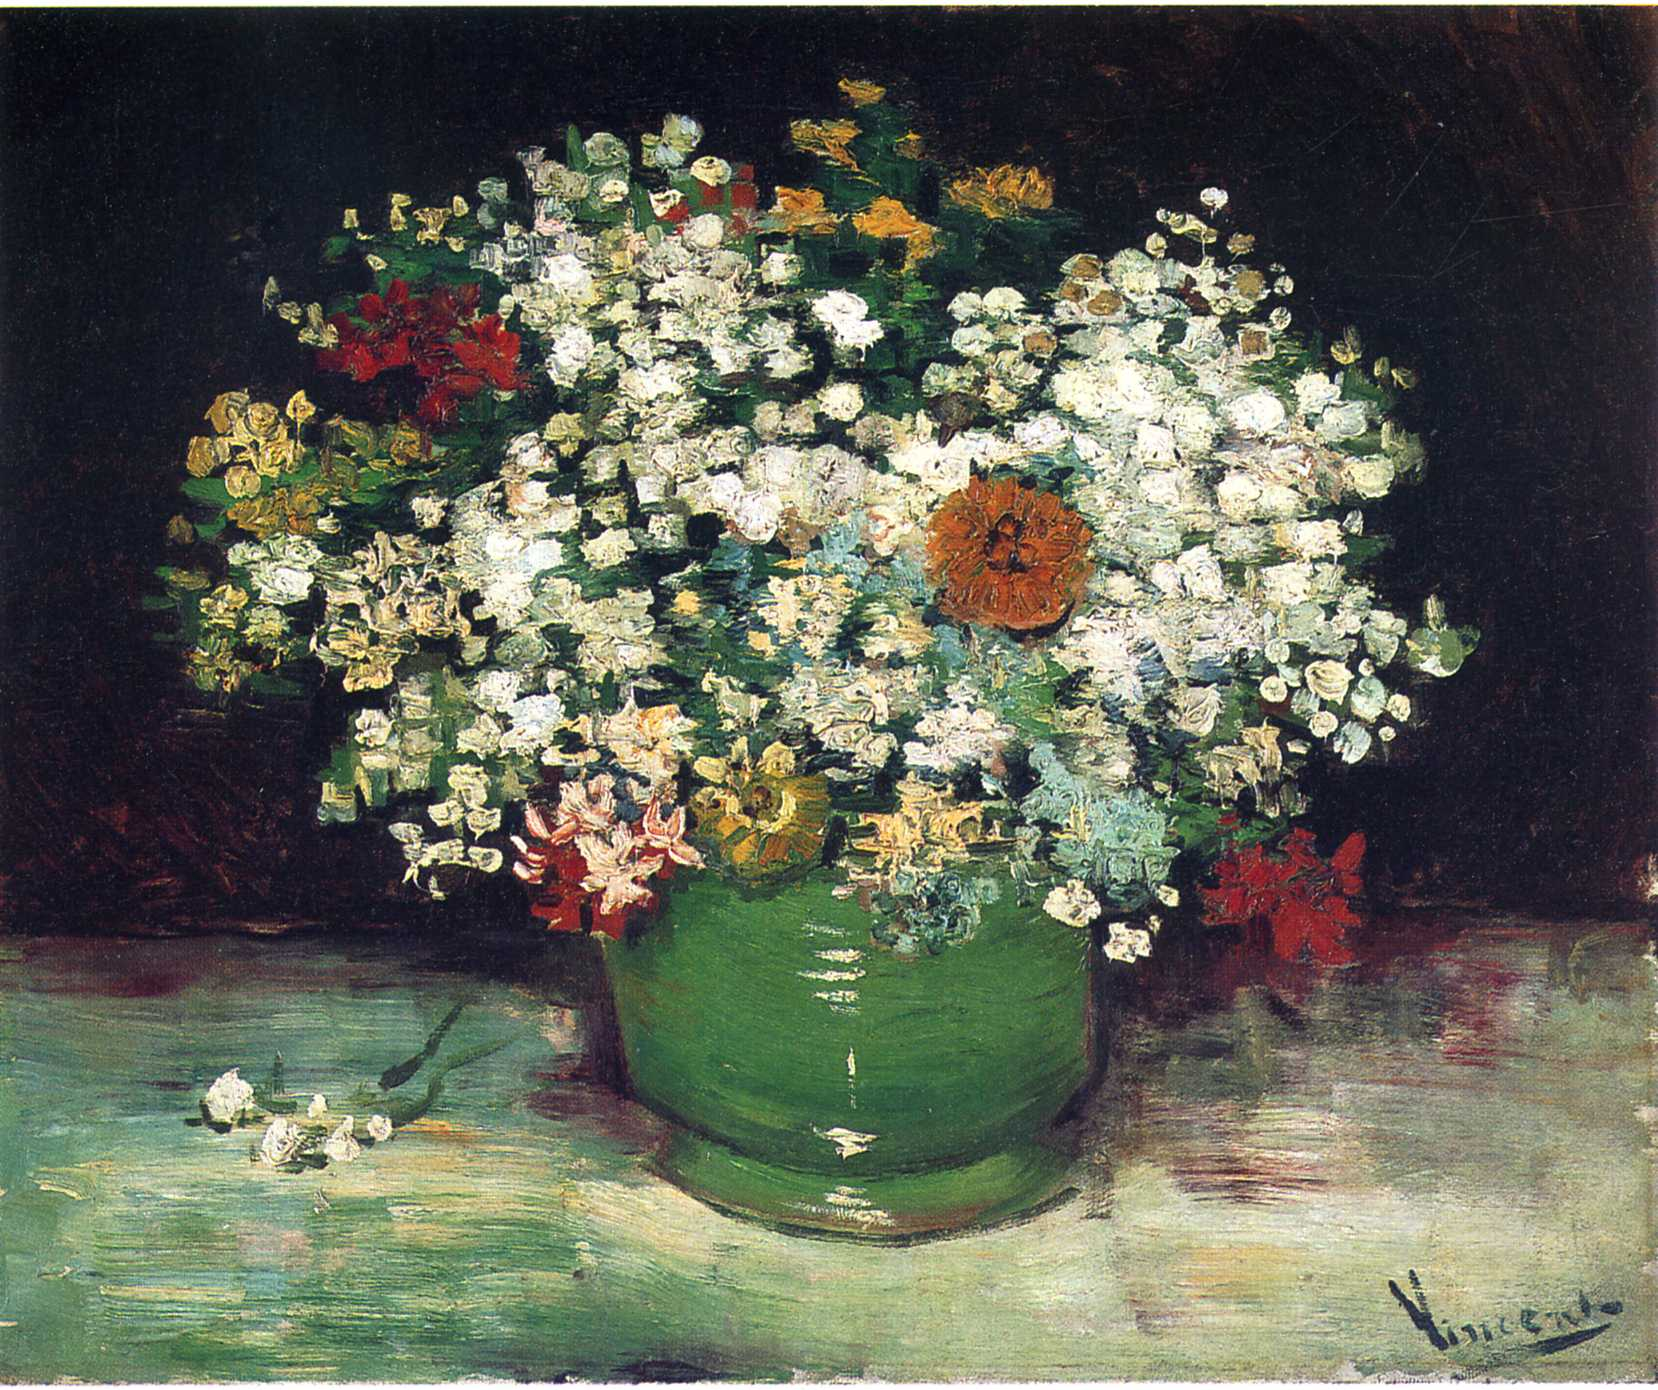 Vase with Zinnias and Other Flowers 1886 Vincent van Gogh WikiArt